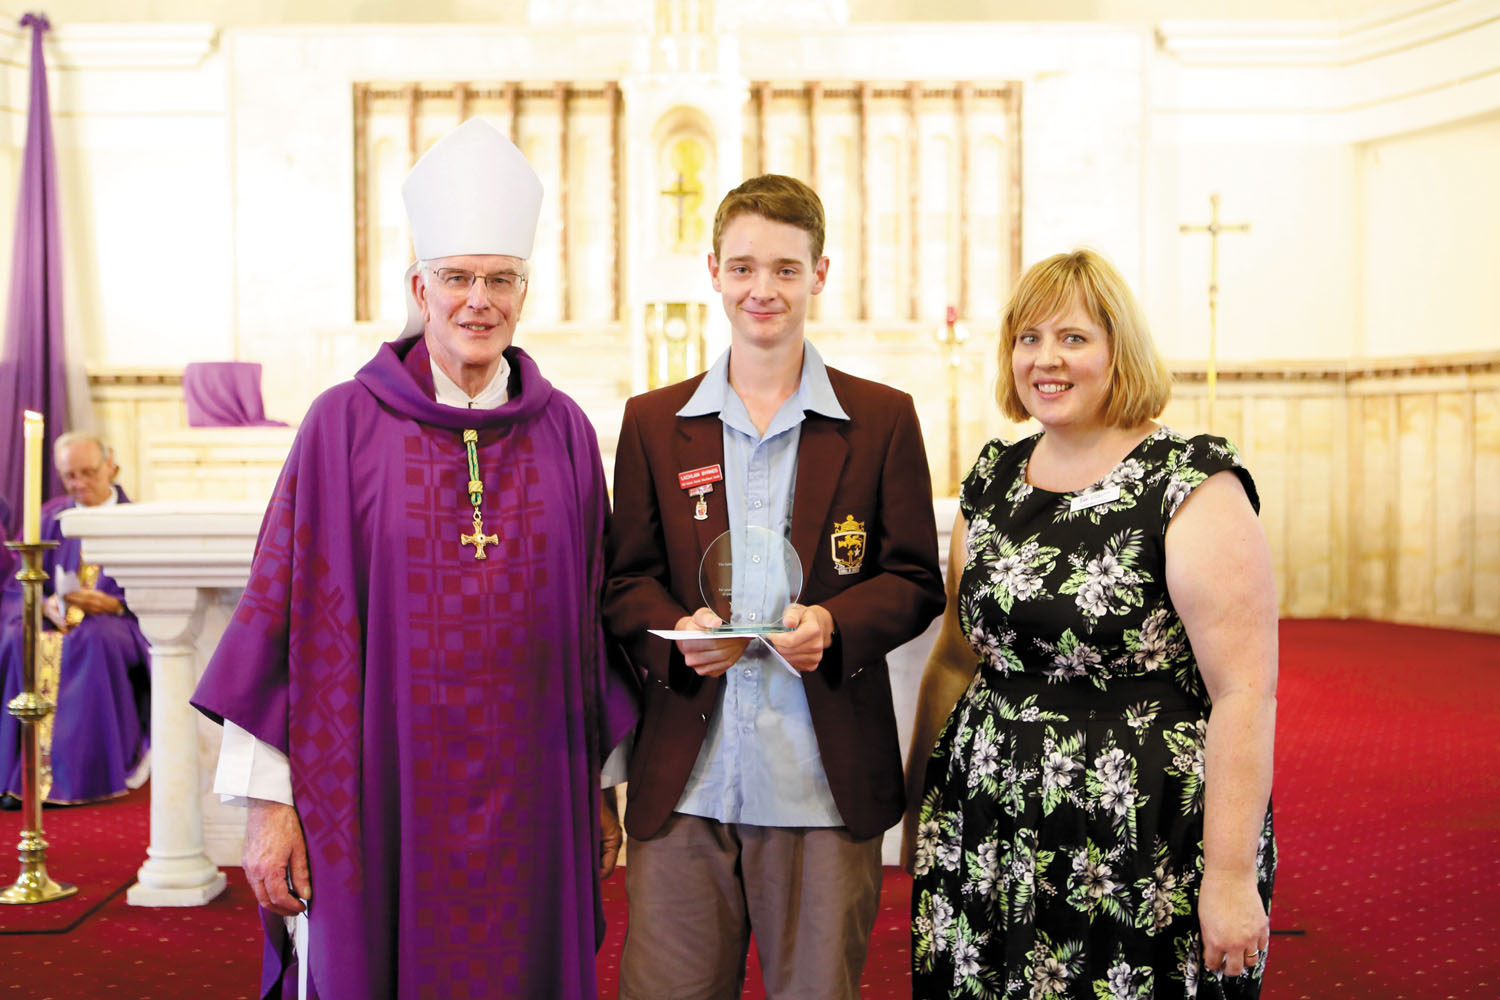 Bishop's Awards recognise community efforts of young Catholics